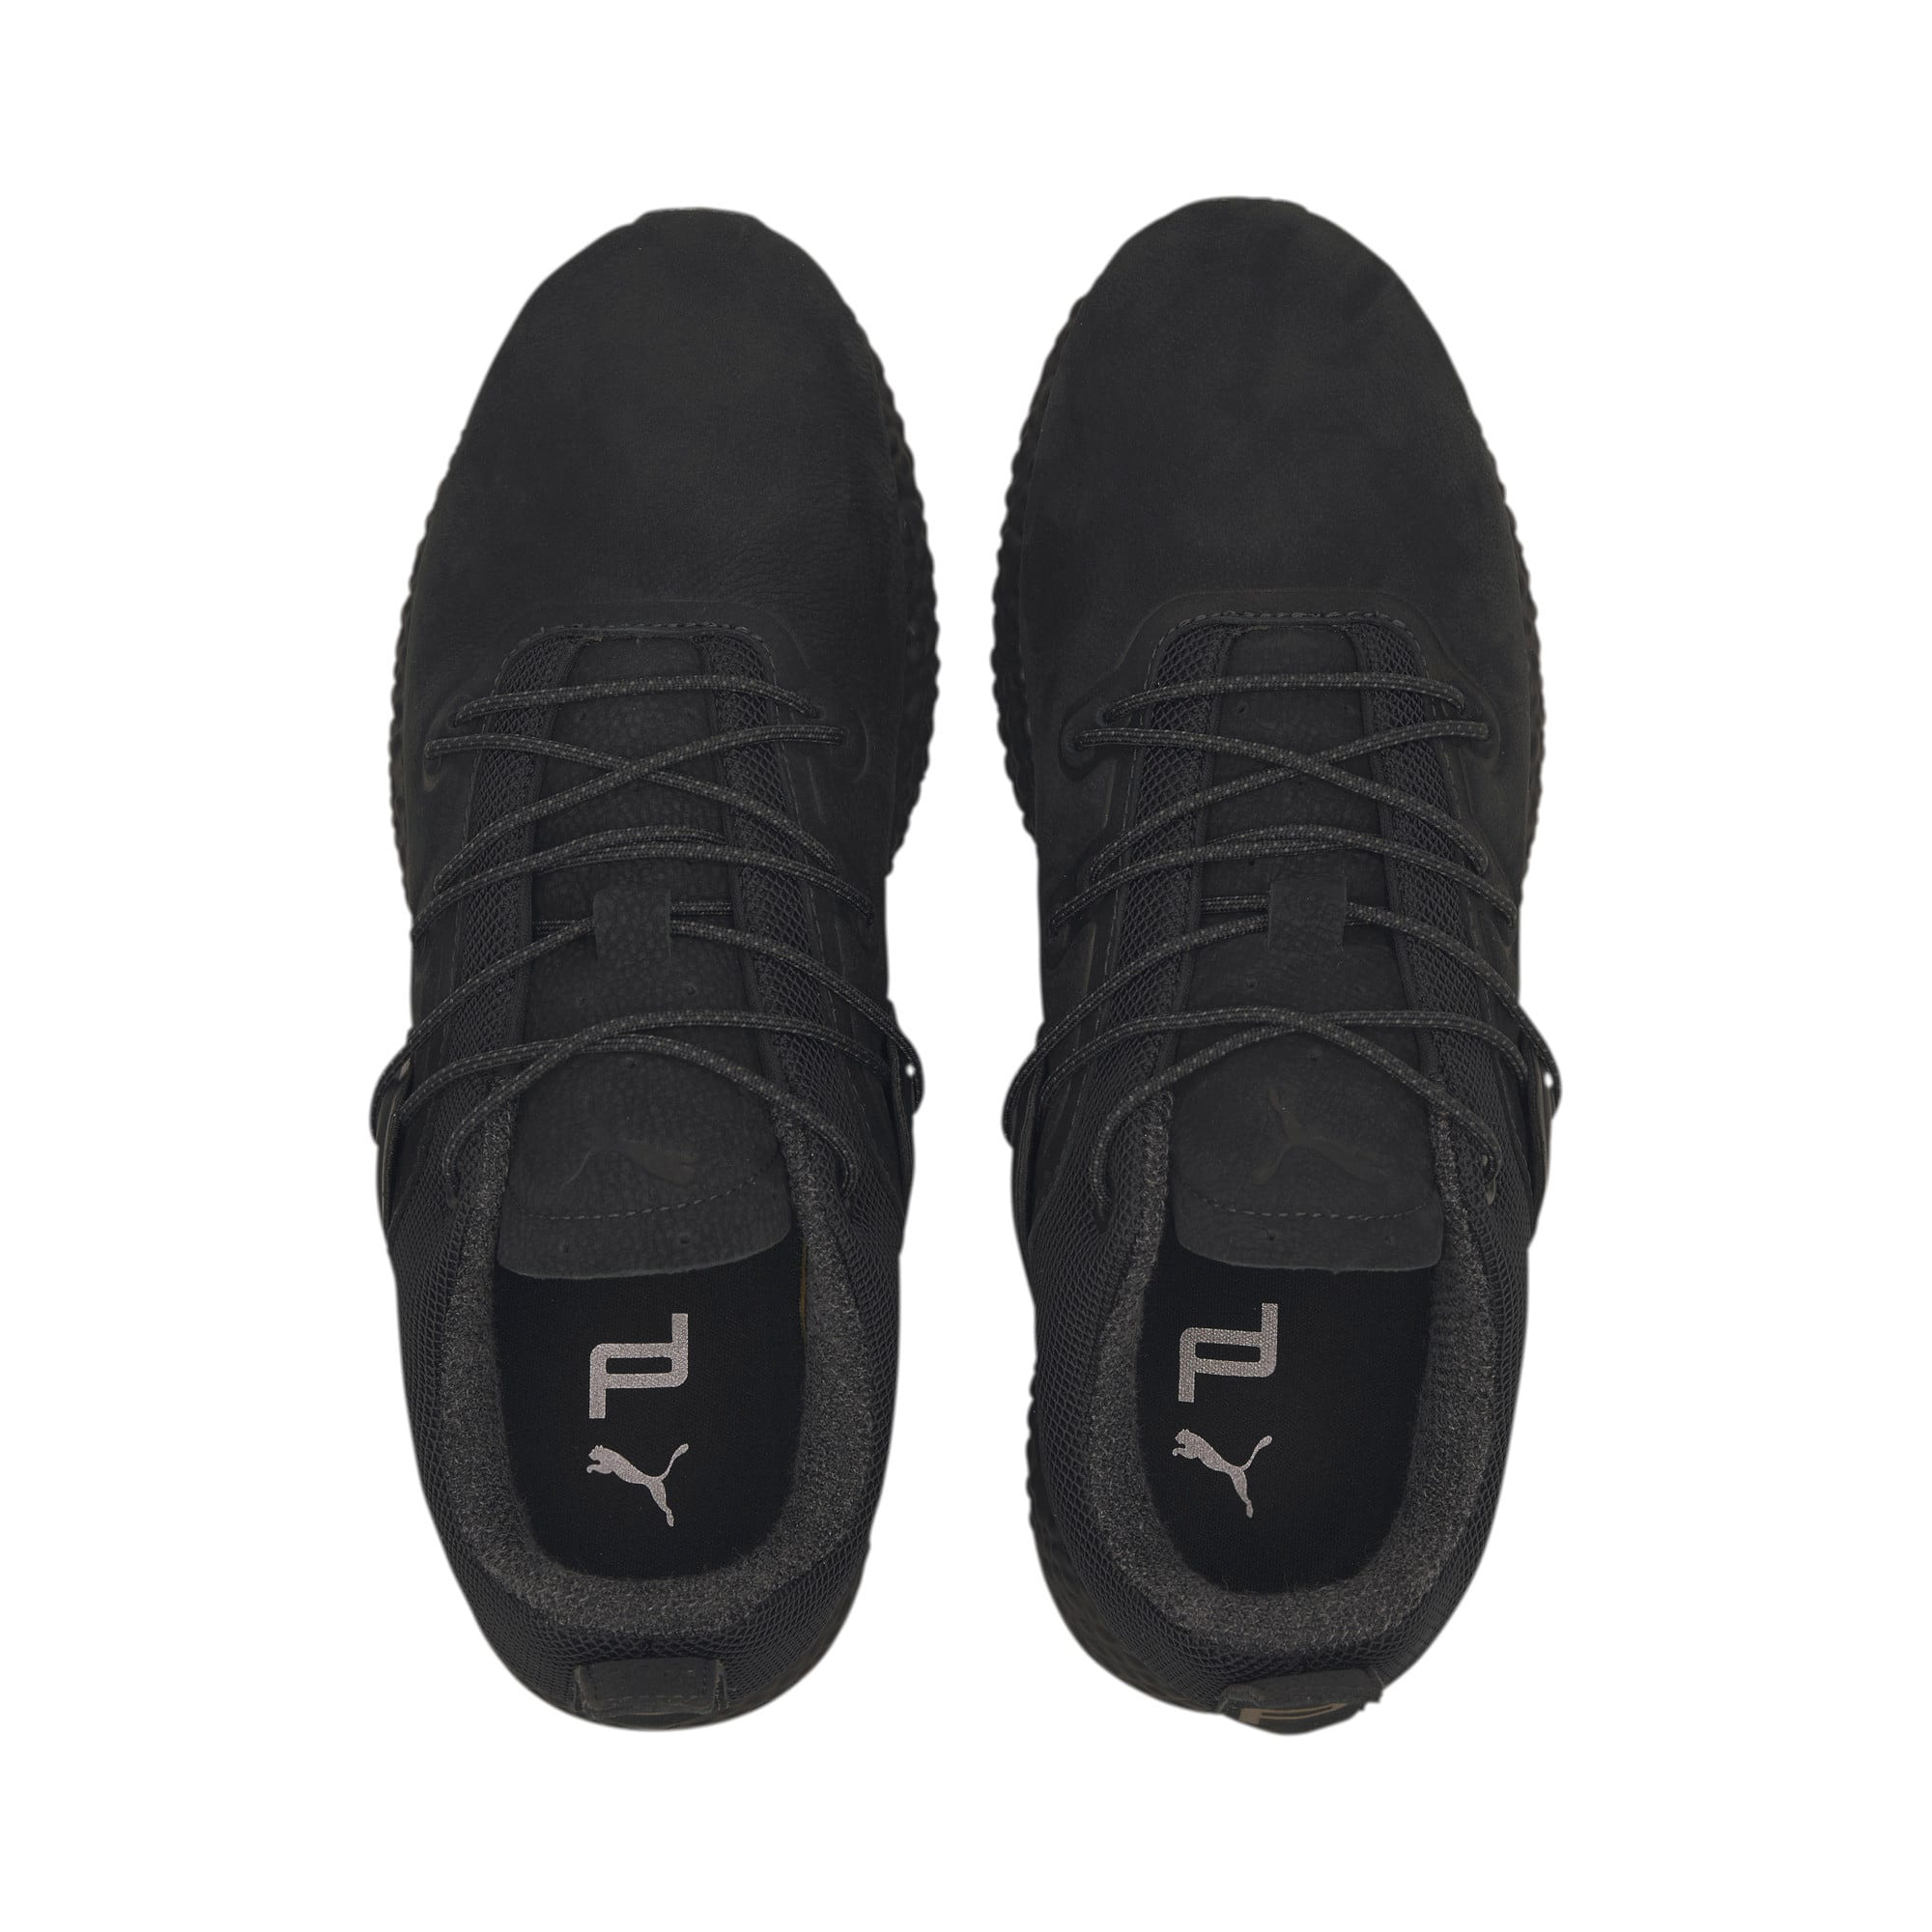 Thumbnail 7 of Porsche Design HYBRID Runner Herren Sneaker, Jet Black-Jet Black, medium